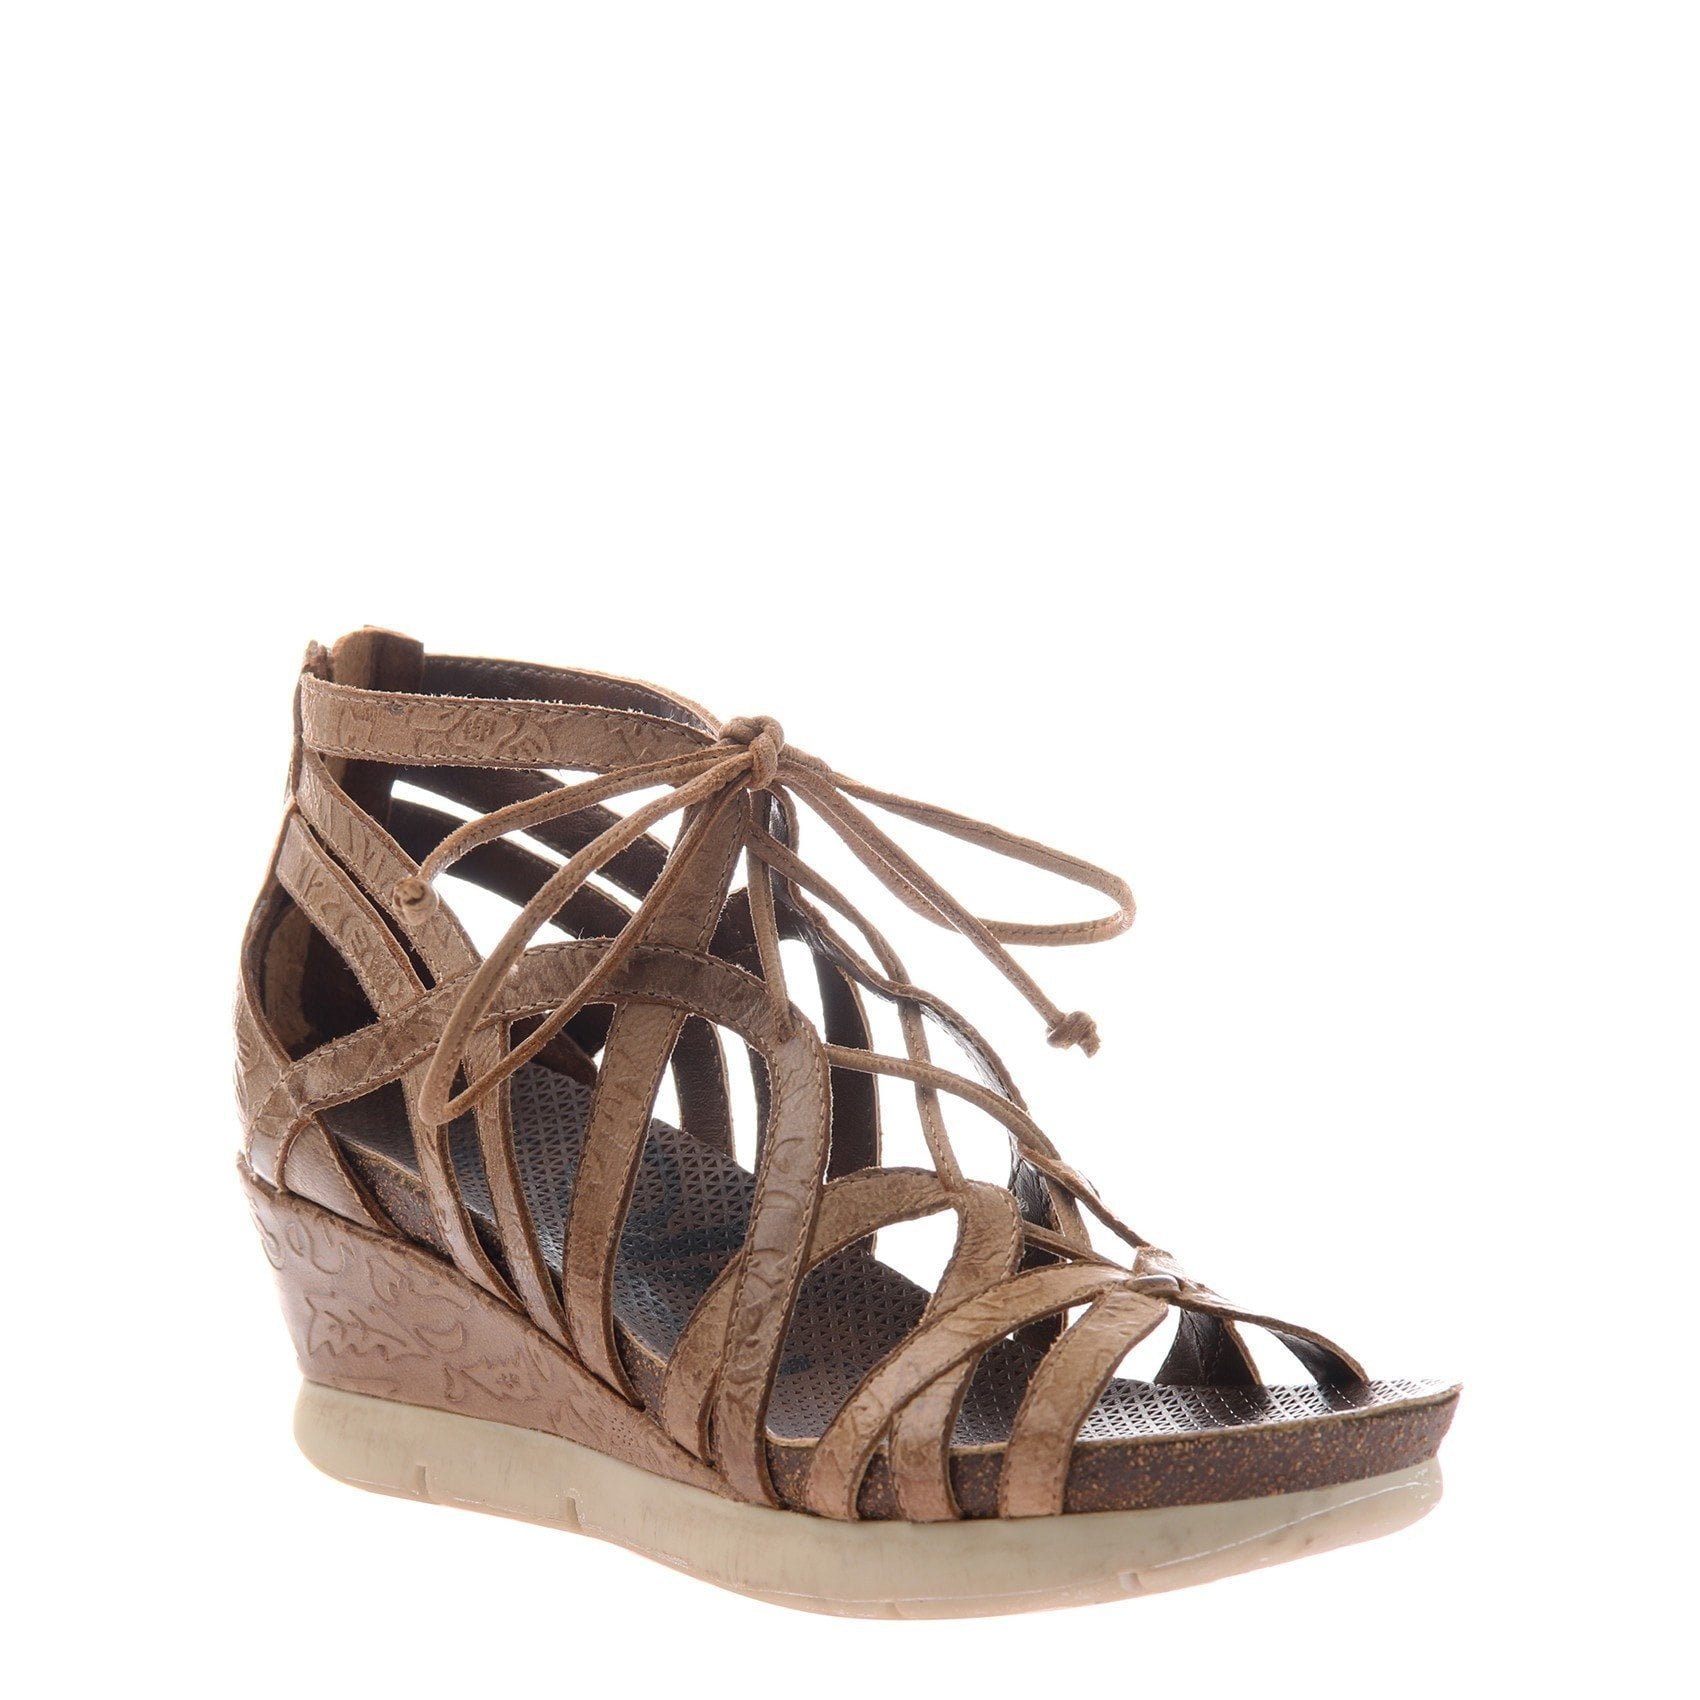 Nomadic women's wedge in hickory